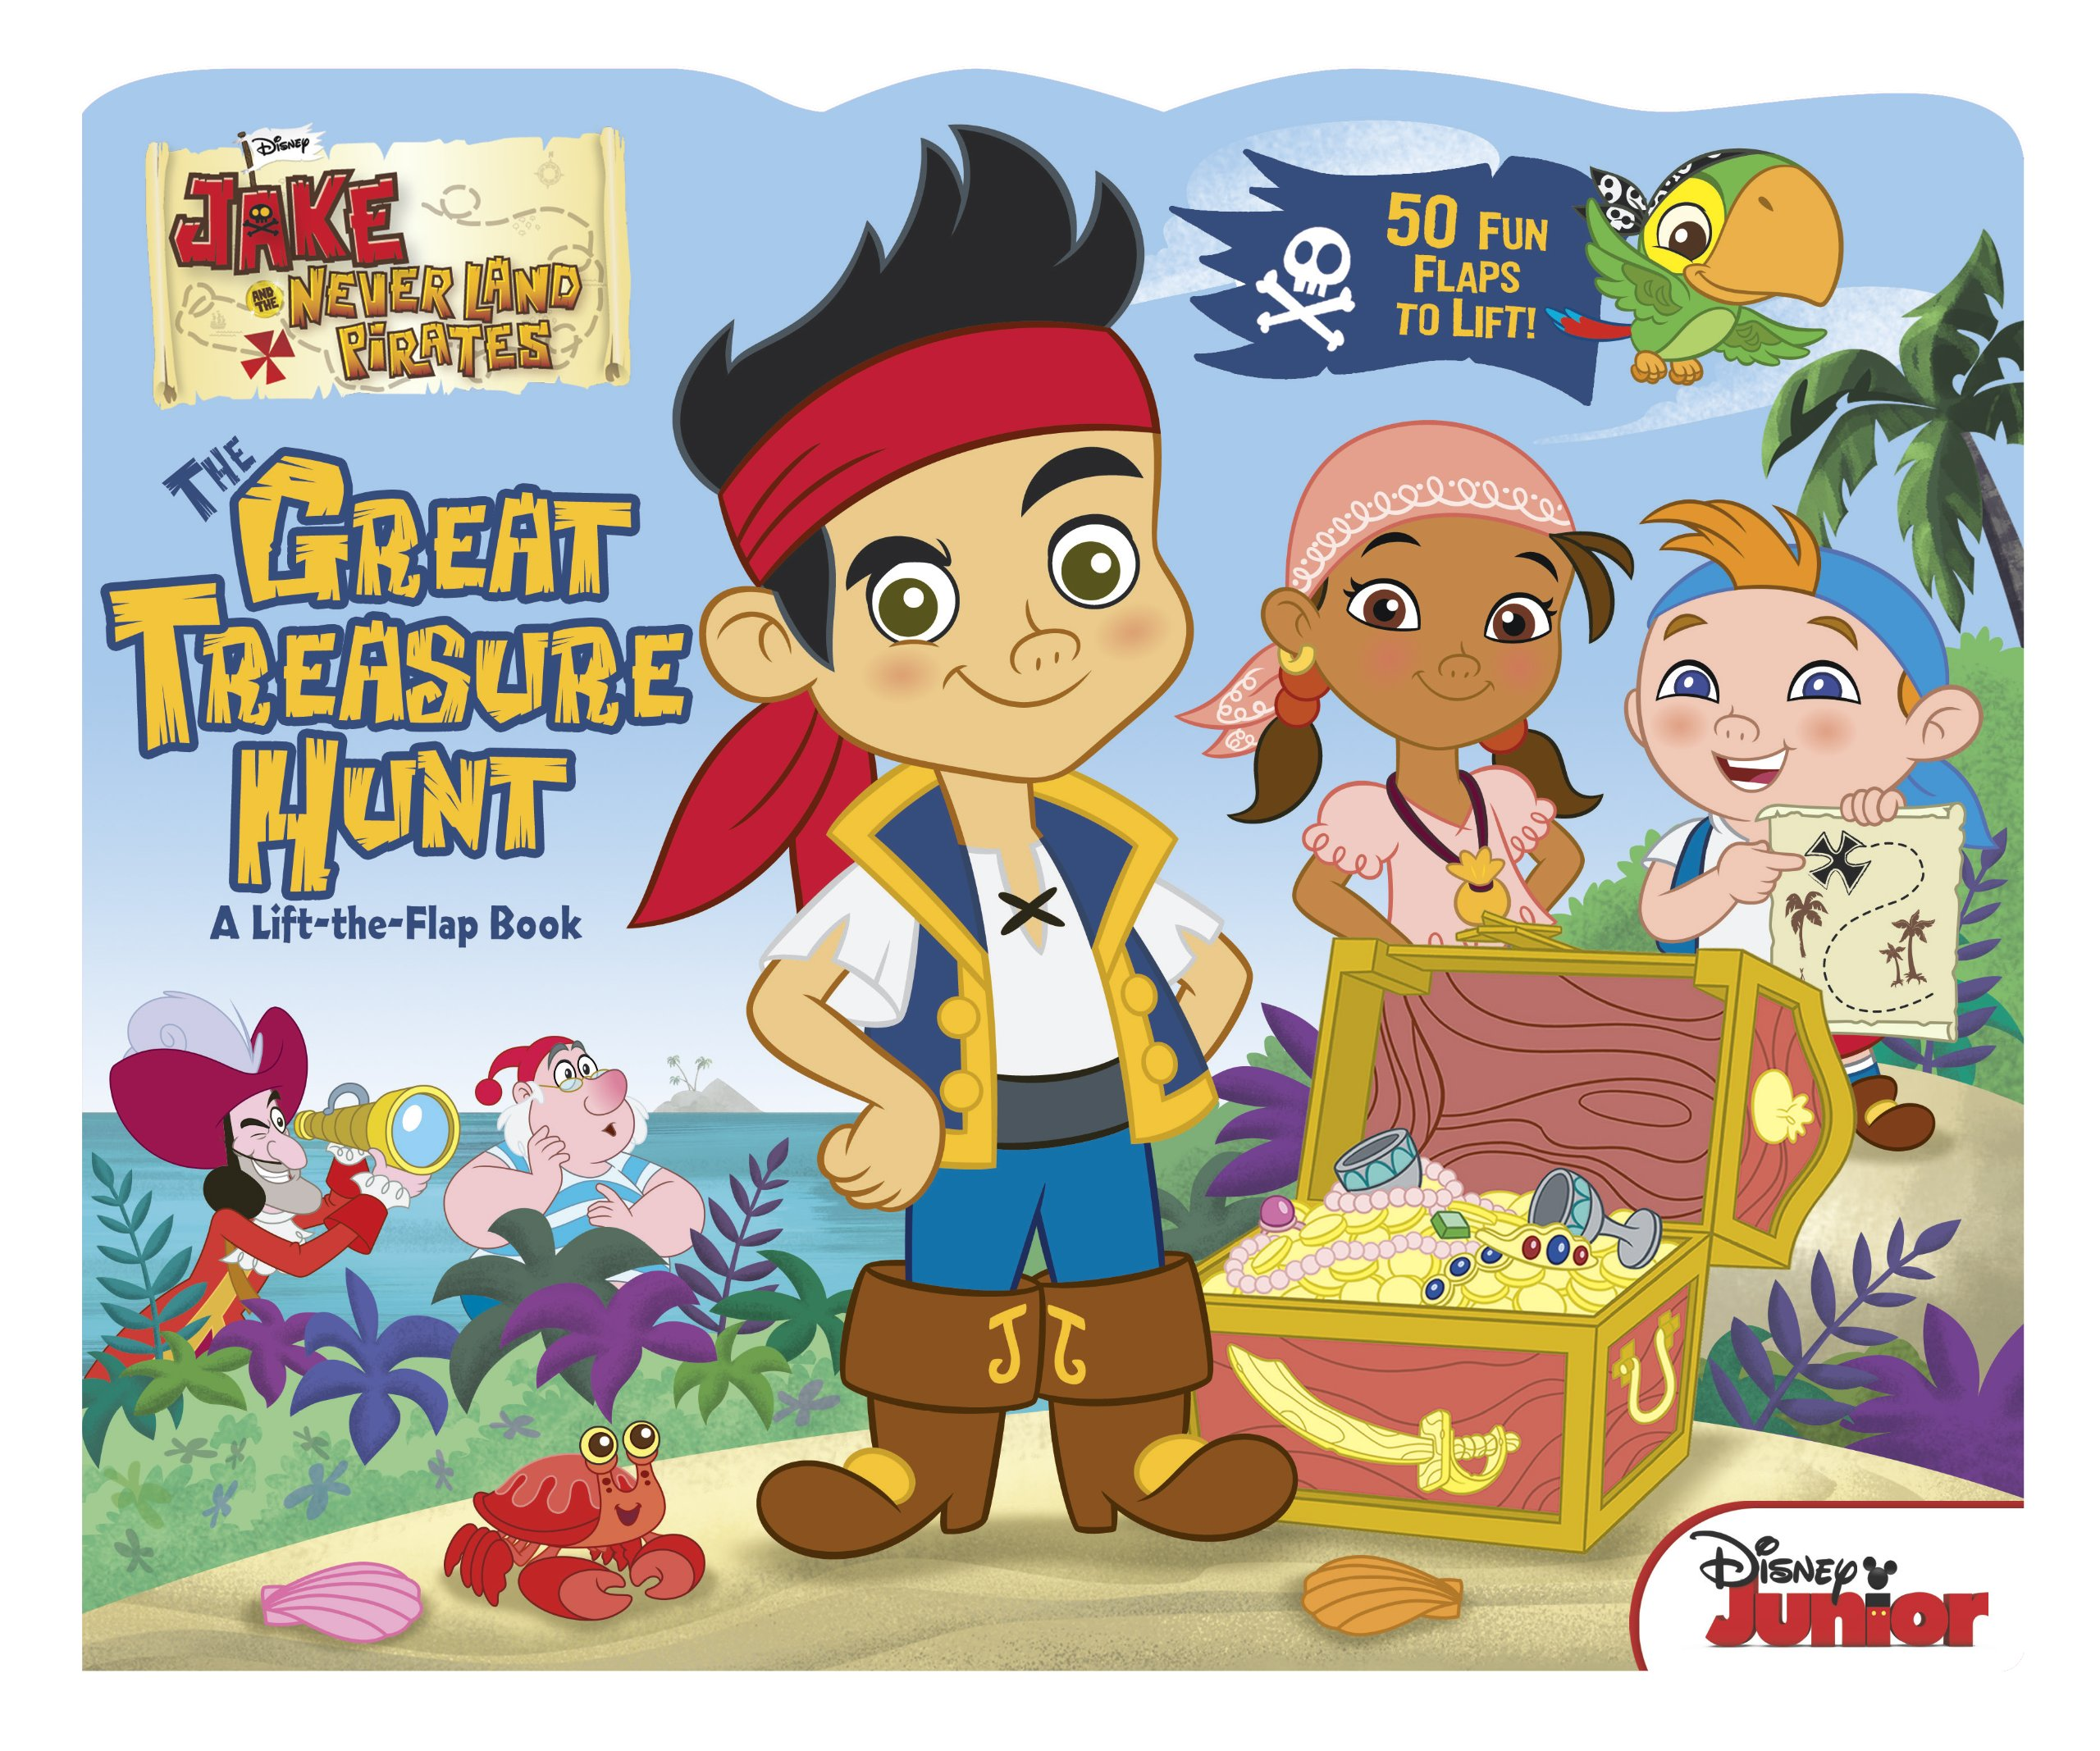 Jake and the neverland pirates treasure chest printable - Jake And The Never Land Pirates The Great Treasure Hunt A Lift The Flap Book Disney Book Group Bill Scollon Disney Storybook Art Team 9781423163961